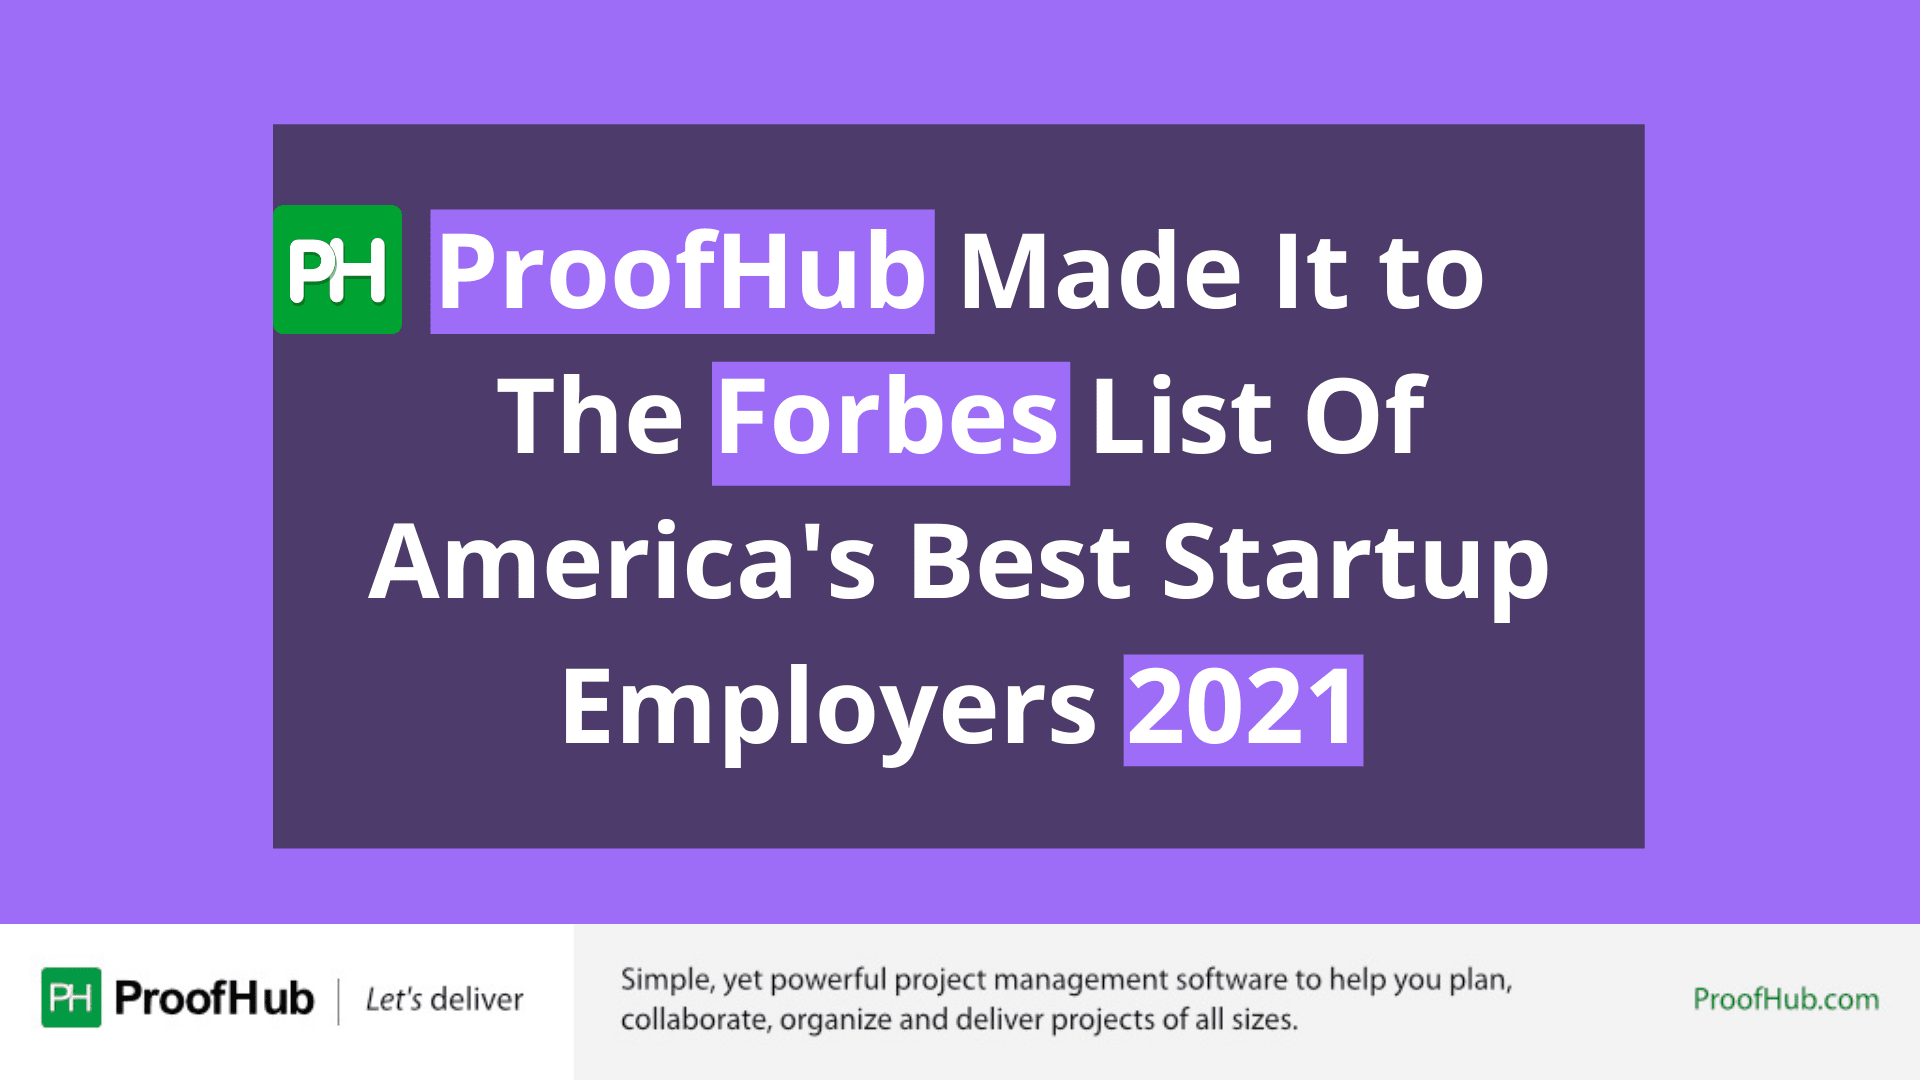 ProofHub Made It to The Forbes List Of America's Best Startup Employers 2021